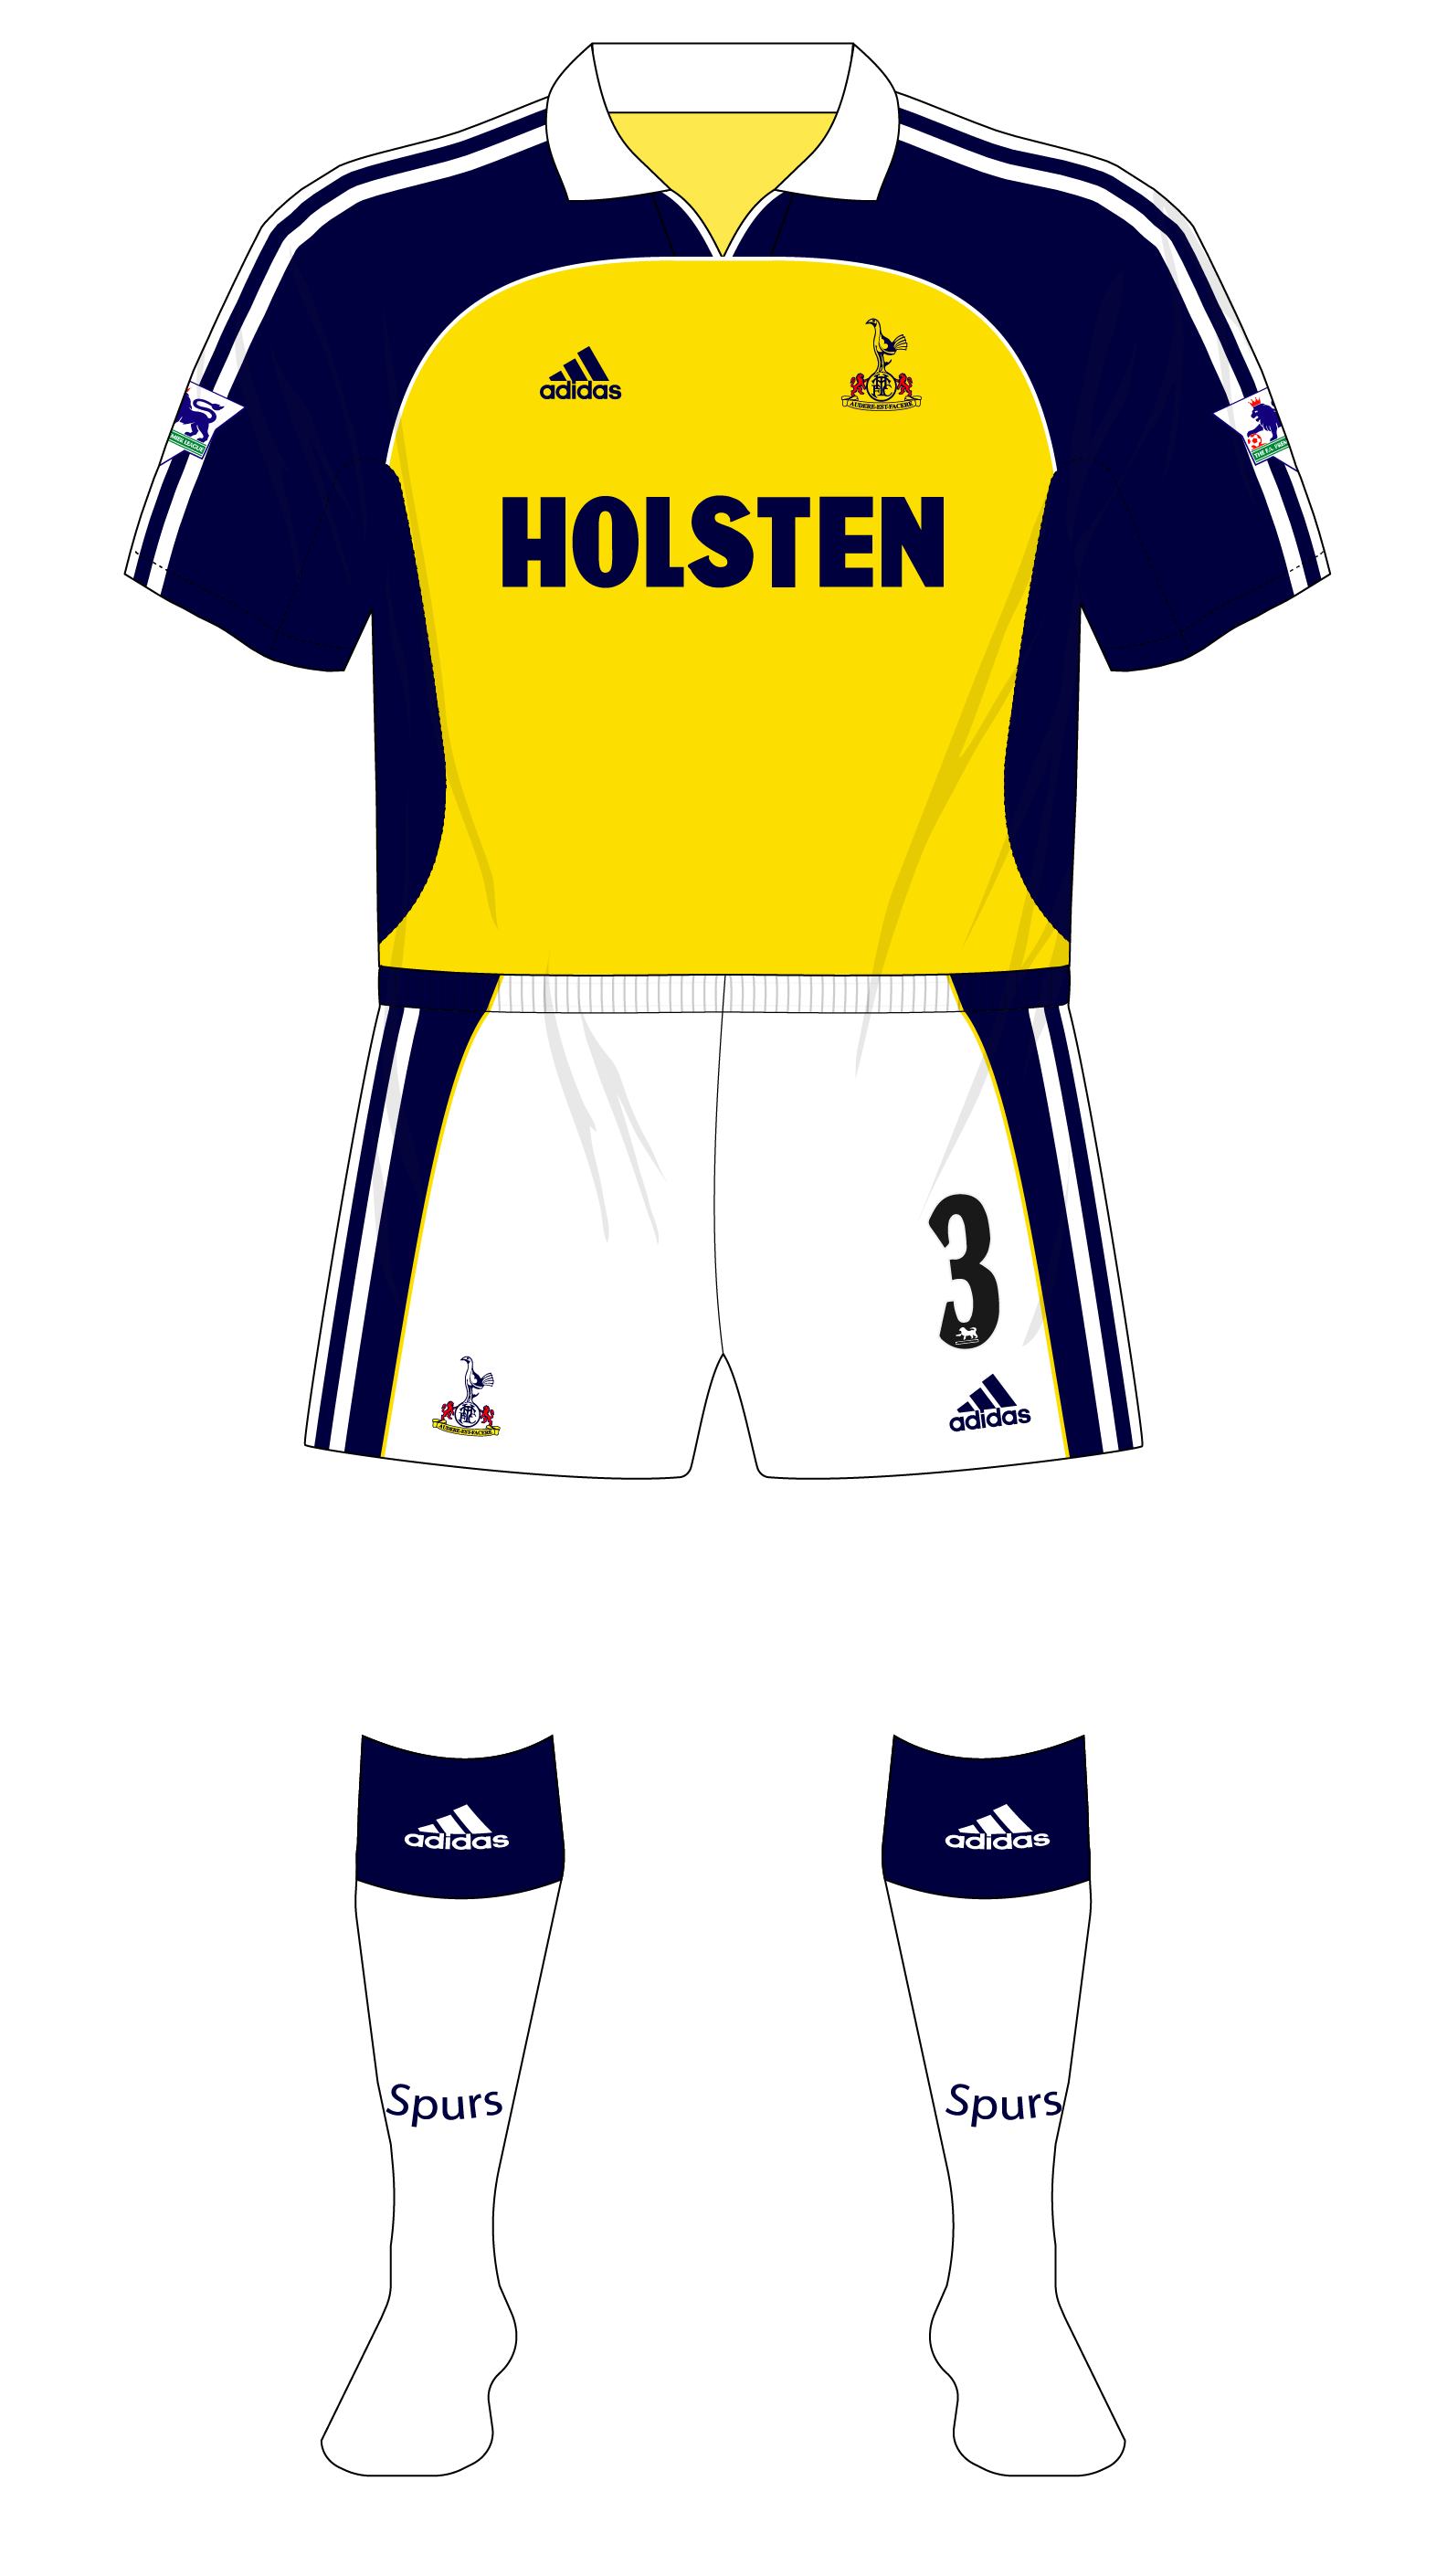 Tottenham Hotspur Spurs 1999 2000 Adidas Away 01 Museum Of Jerseys